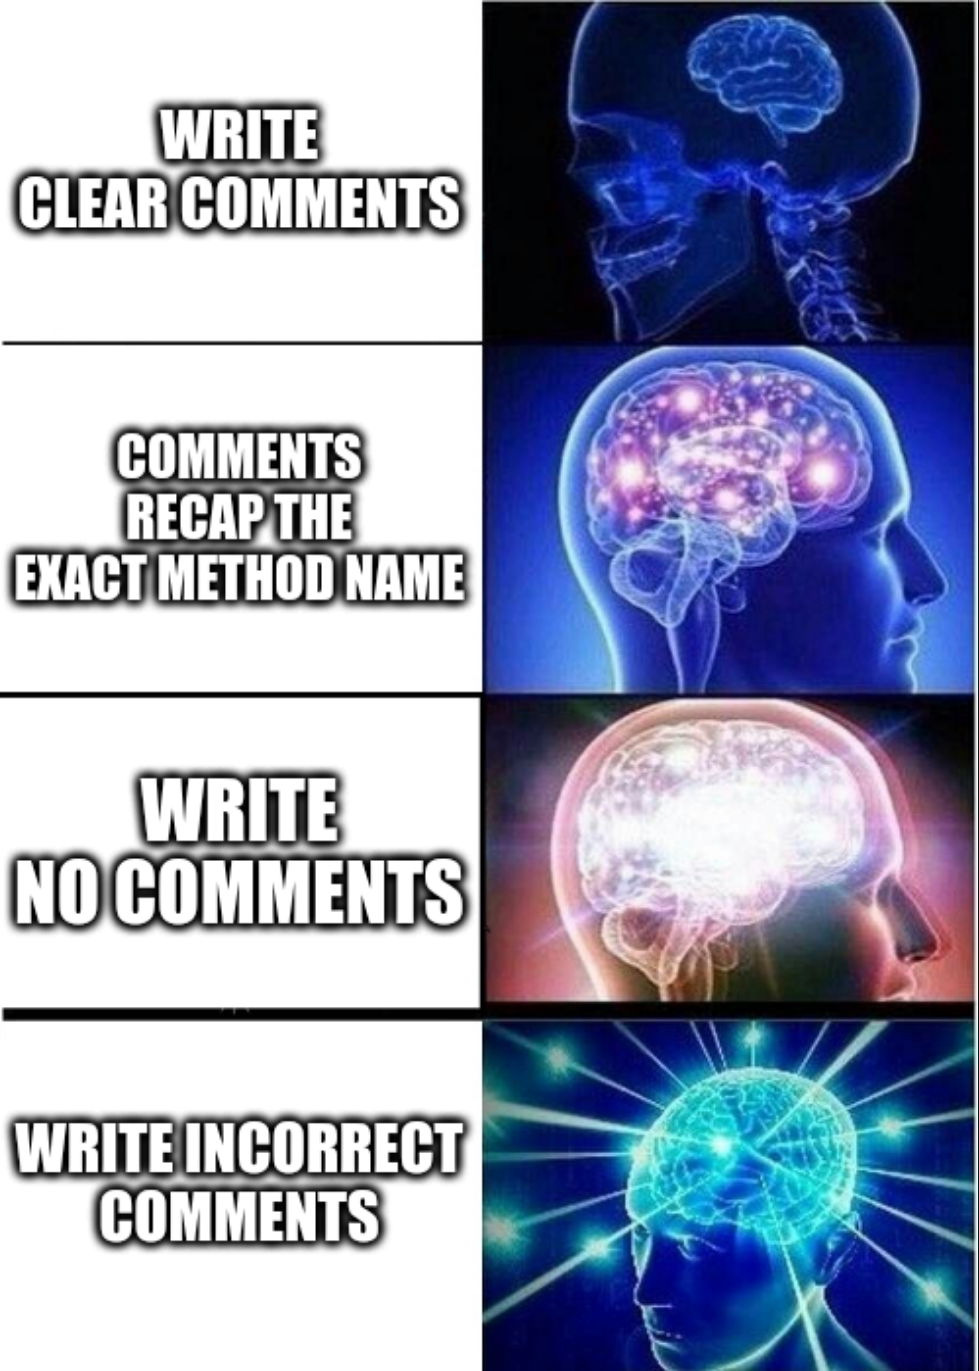 expanding brain meme: write clear comments, comments recap the exact method name, write no comments, write wrong comments